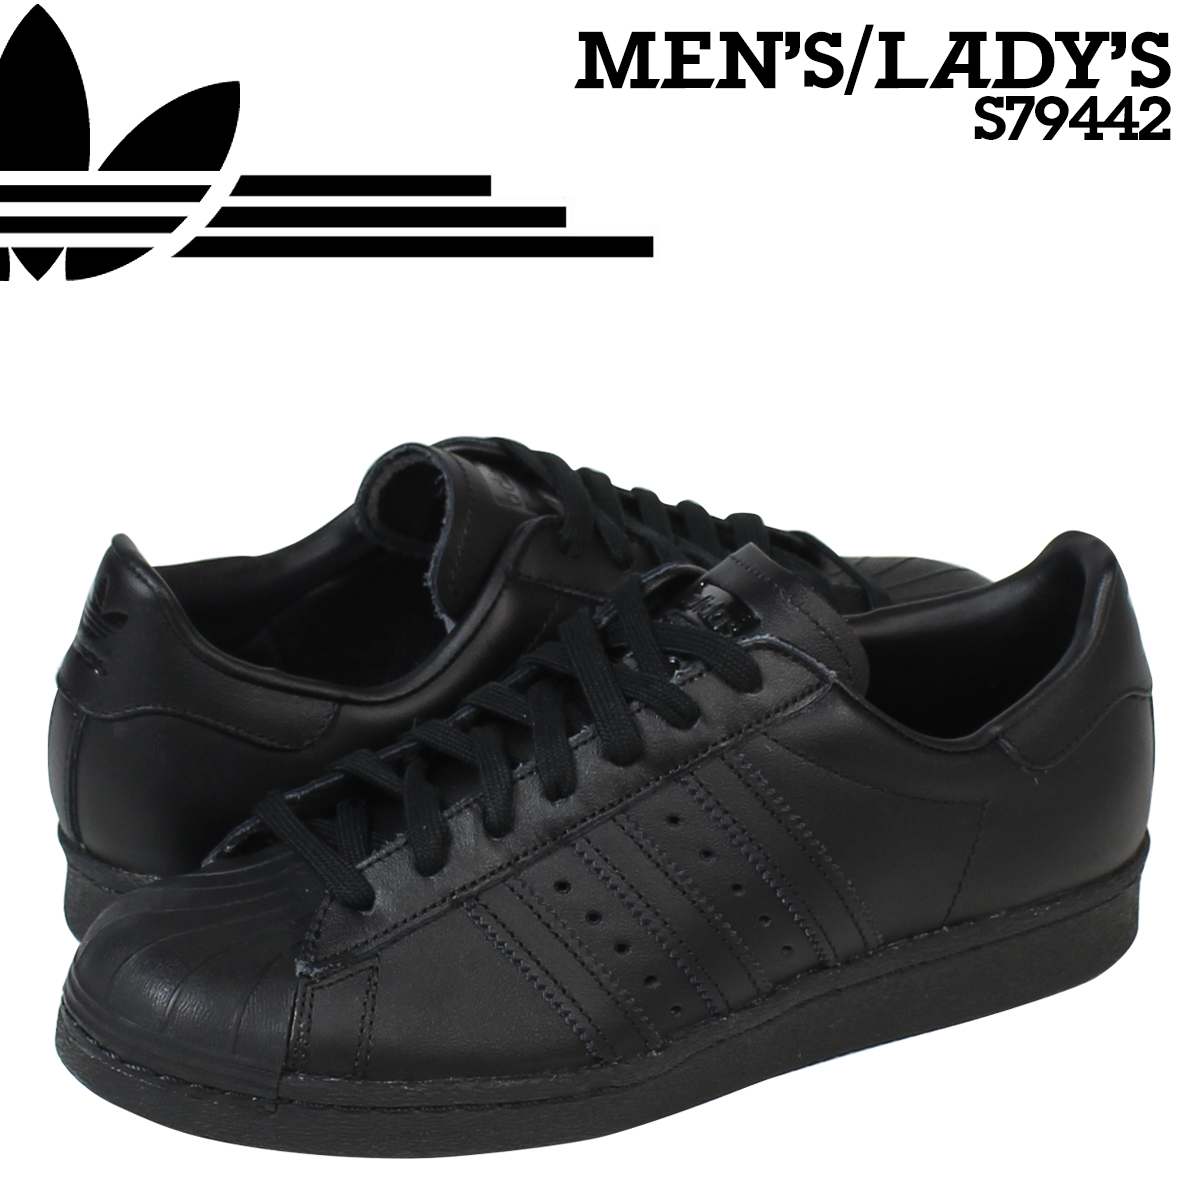 Up 80 Tona S Triple Originals Sneakers Sports 85 Women's In Add Whats Men's Shoes S79442 Superstar Adidas Black Tna fwdA4WFqx